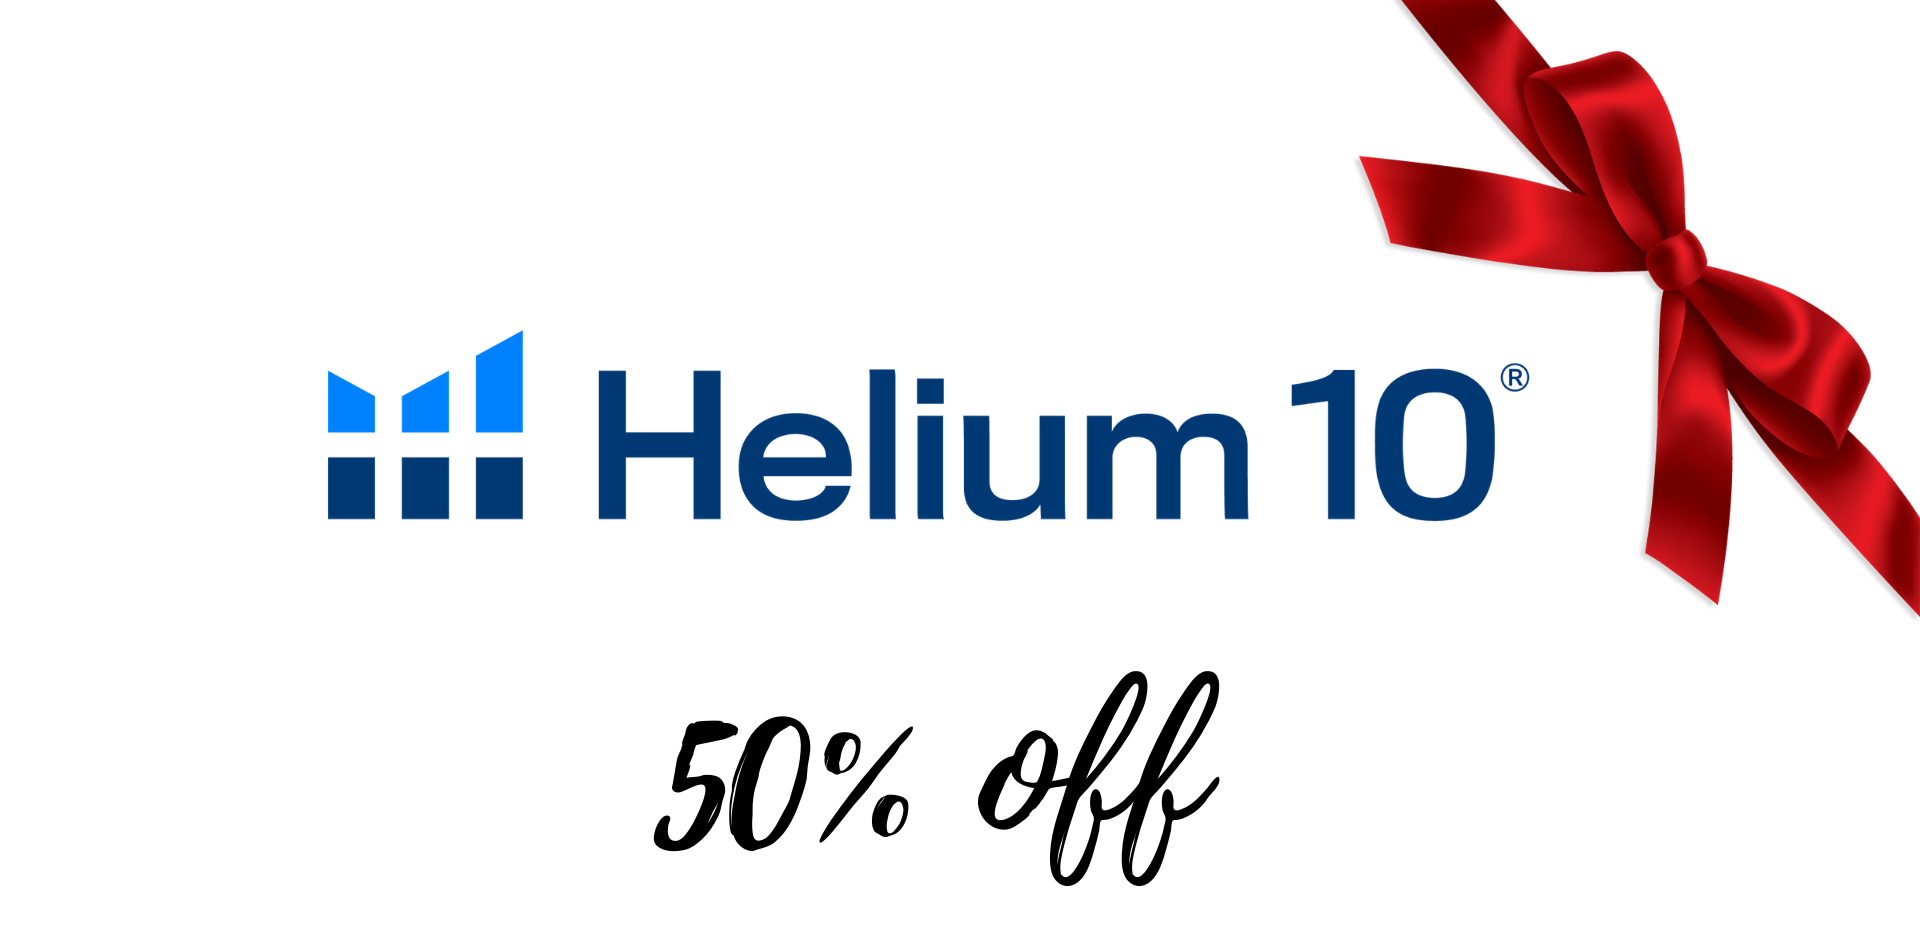 Who Owns Helium10